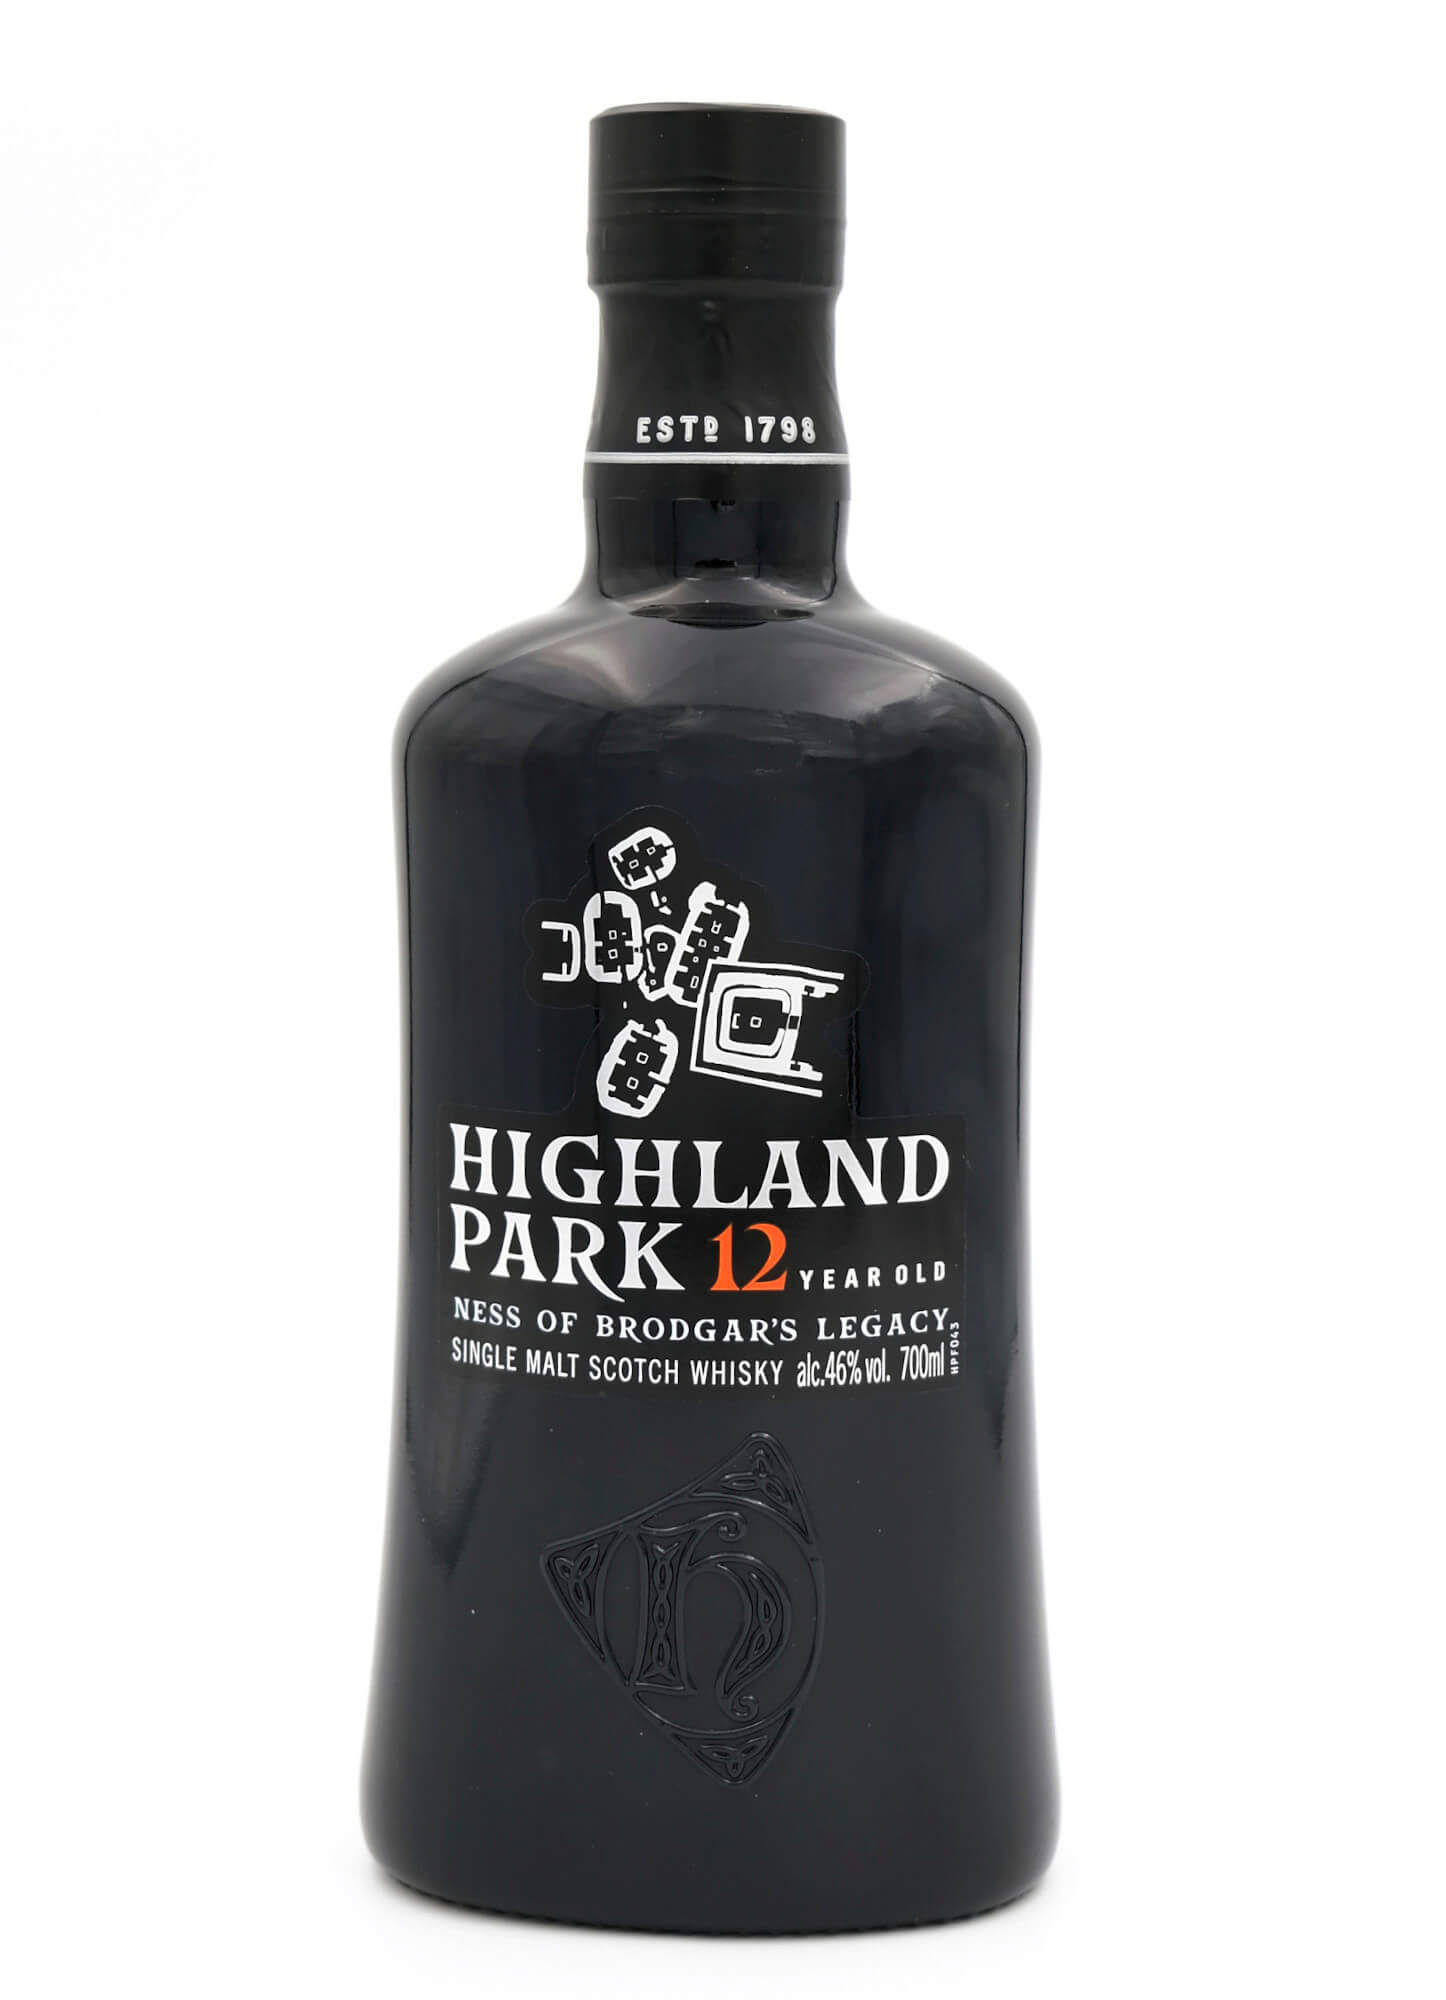 schwarze Flasche Highland Park Ness of Brodgars Legacy Islands Whisky